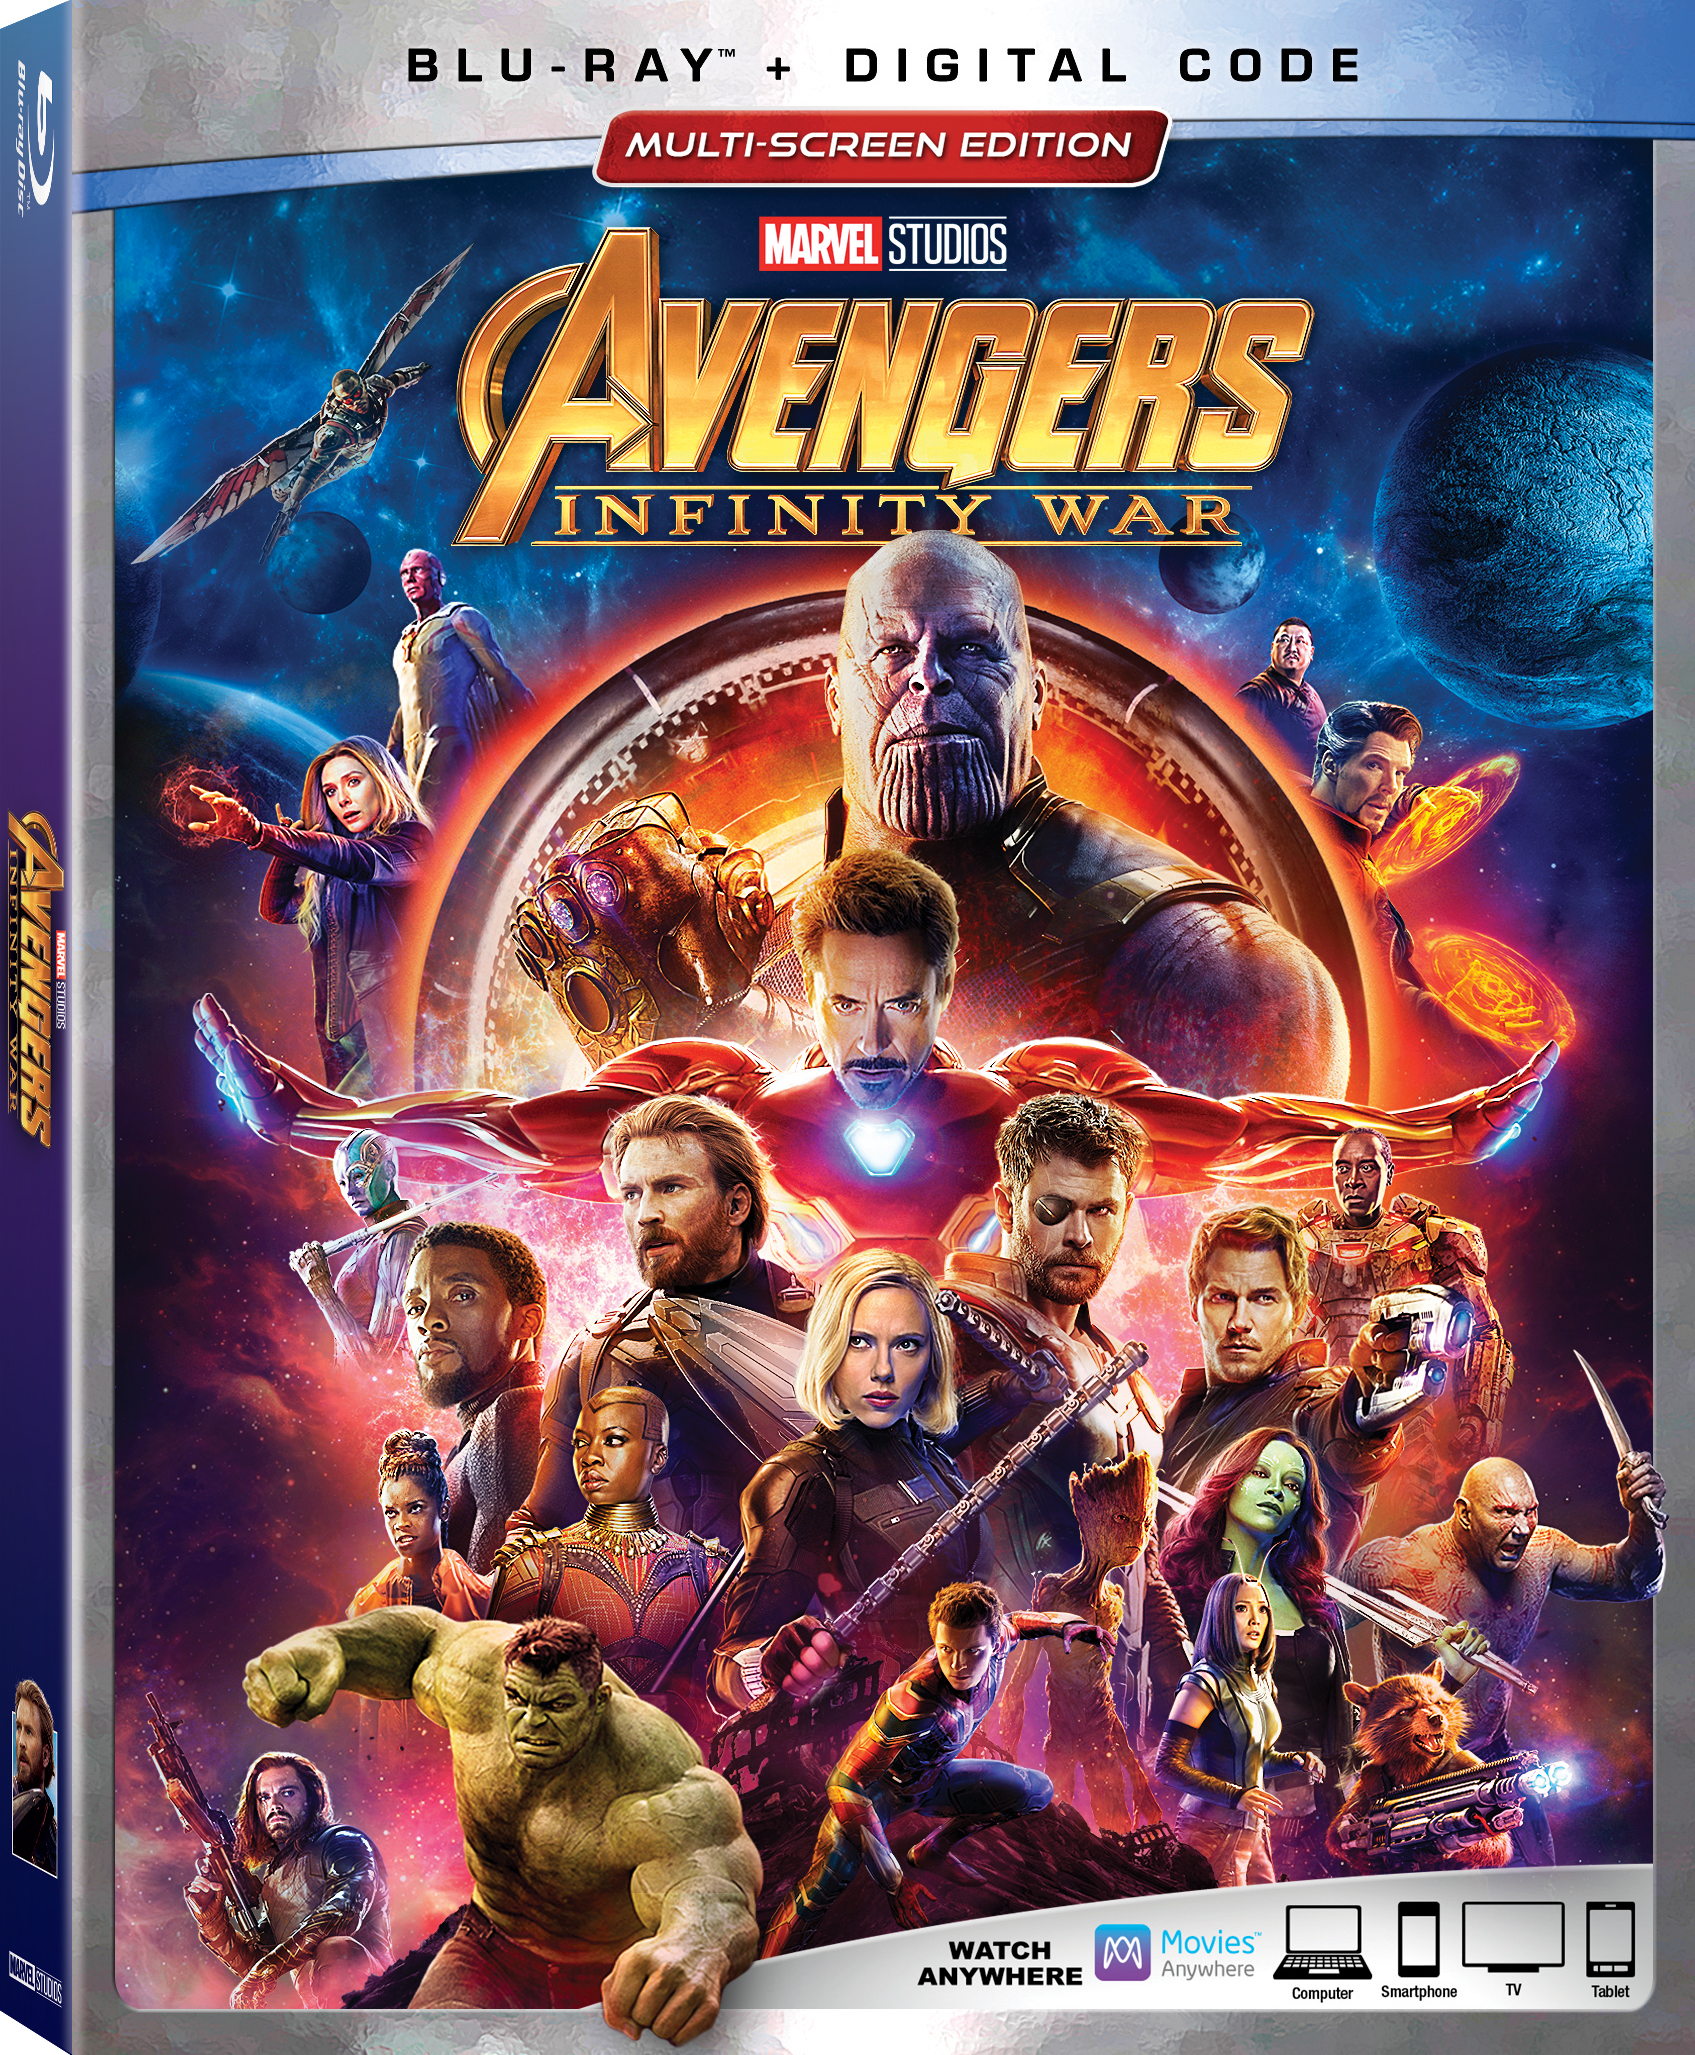 Avengers Infinity War Blu-ray Box Art